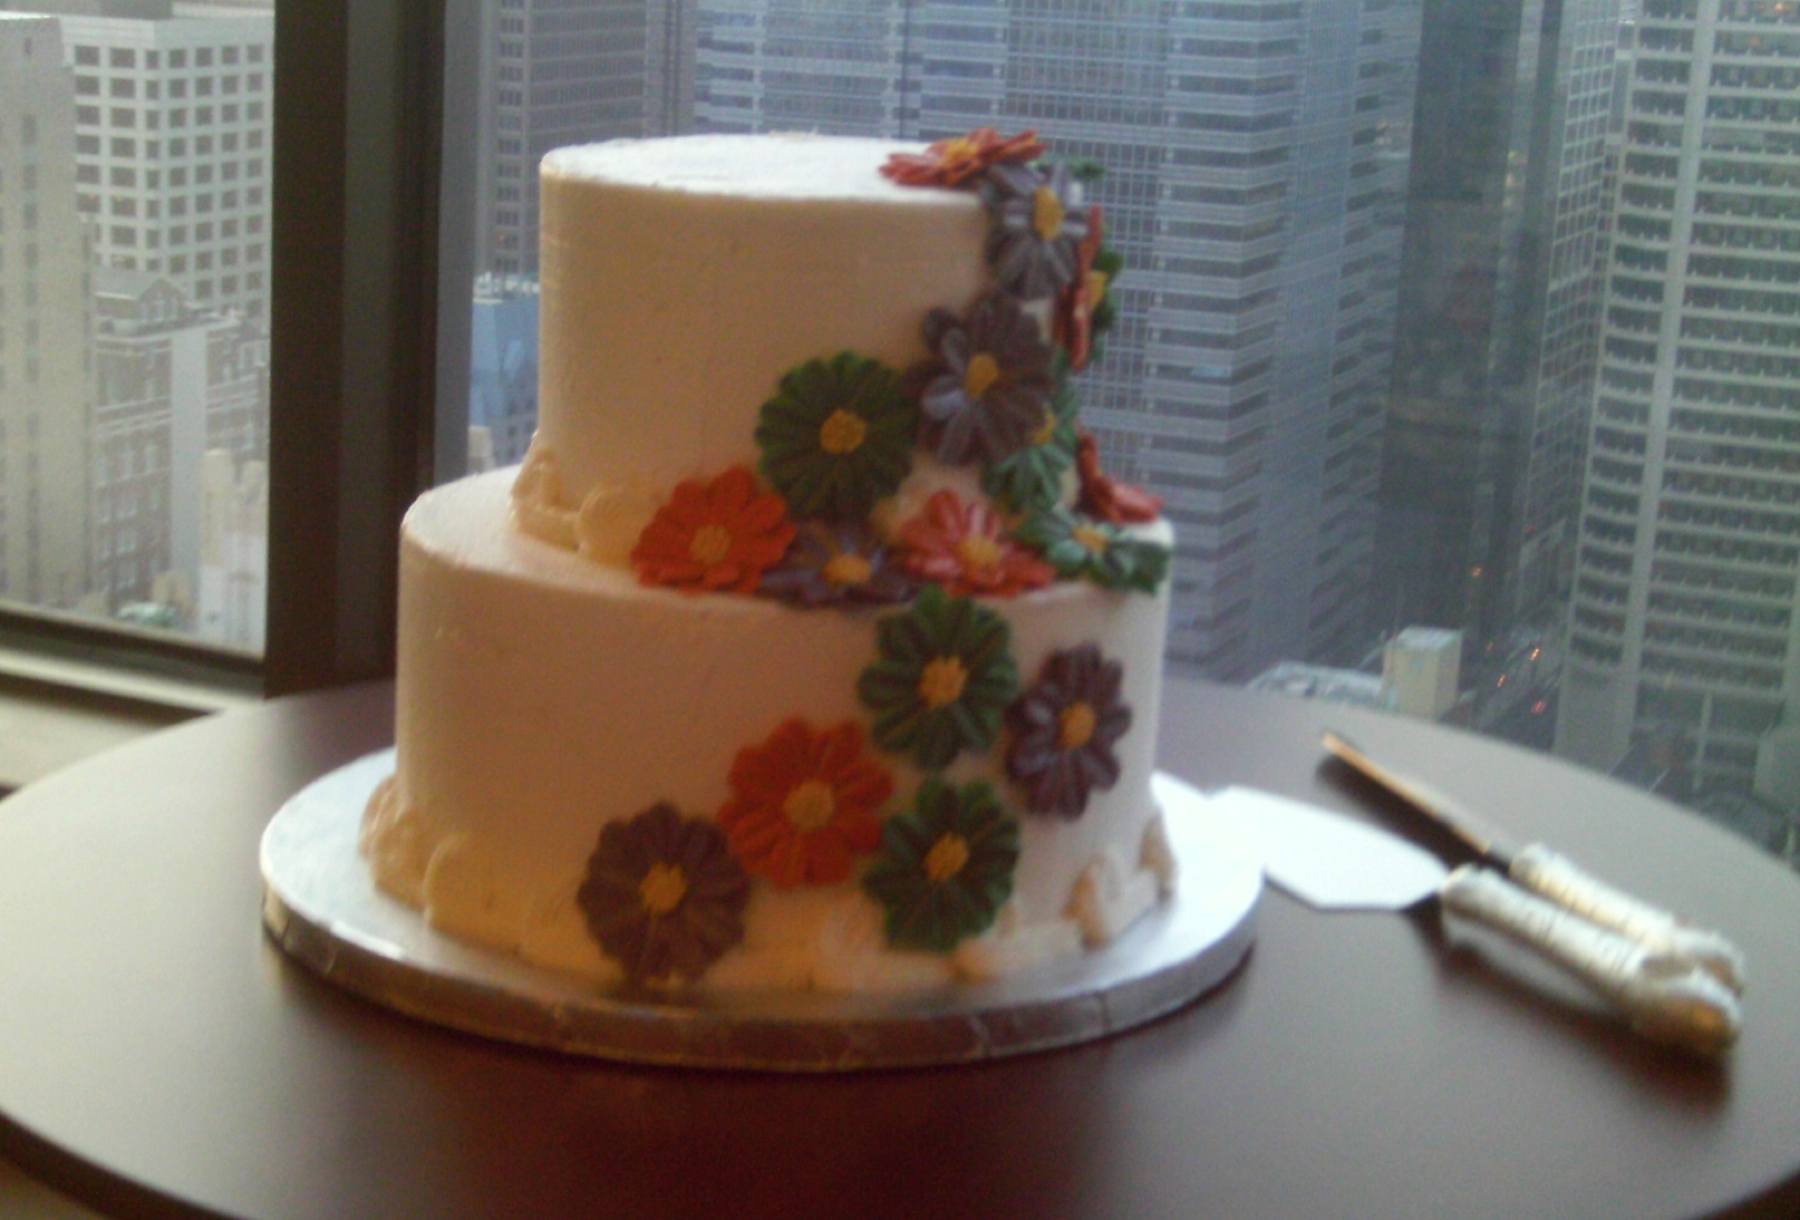 Two totally different wedding cakes